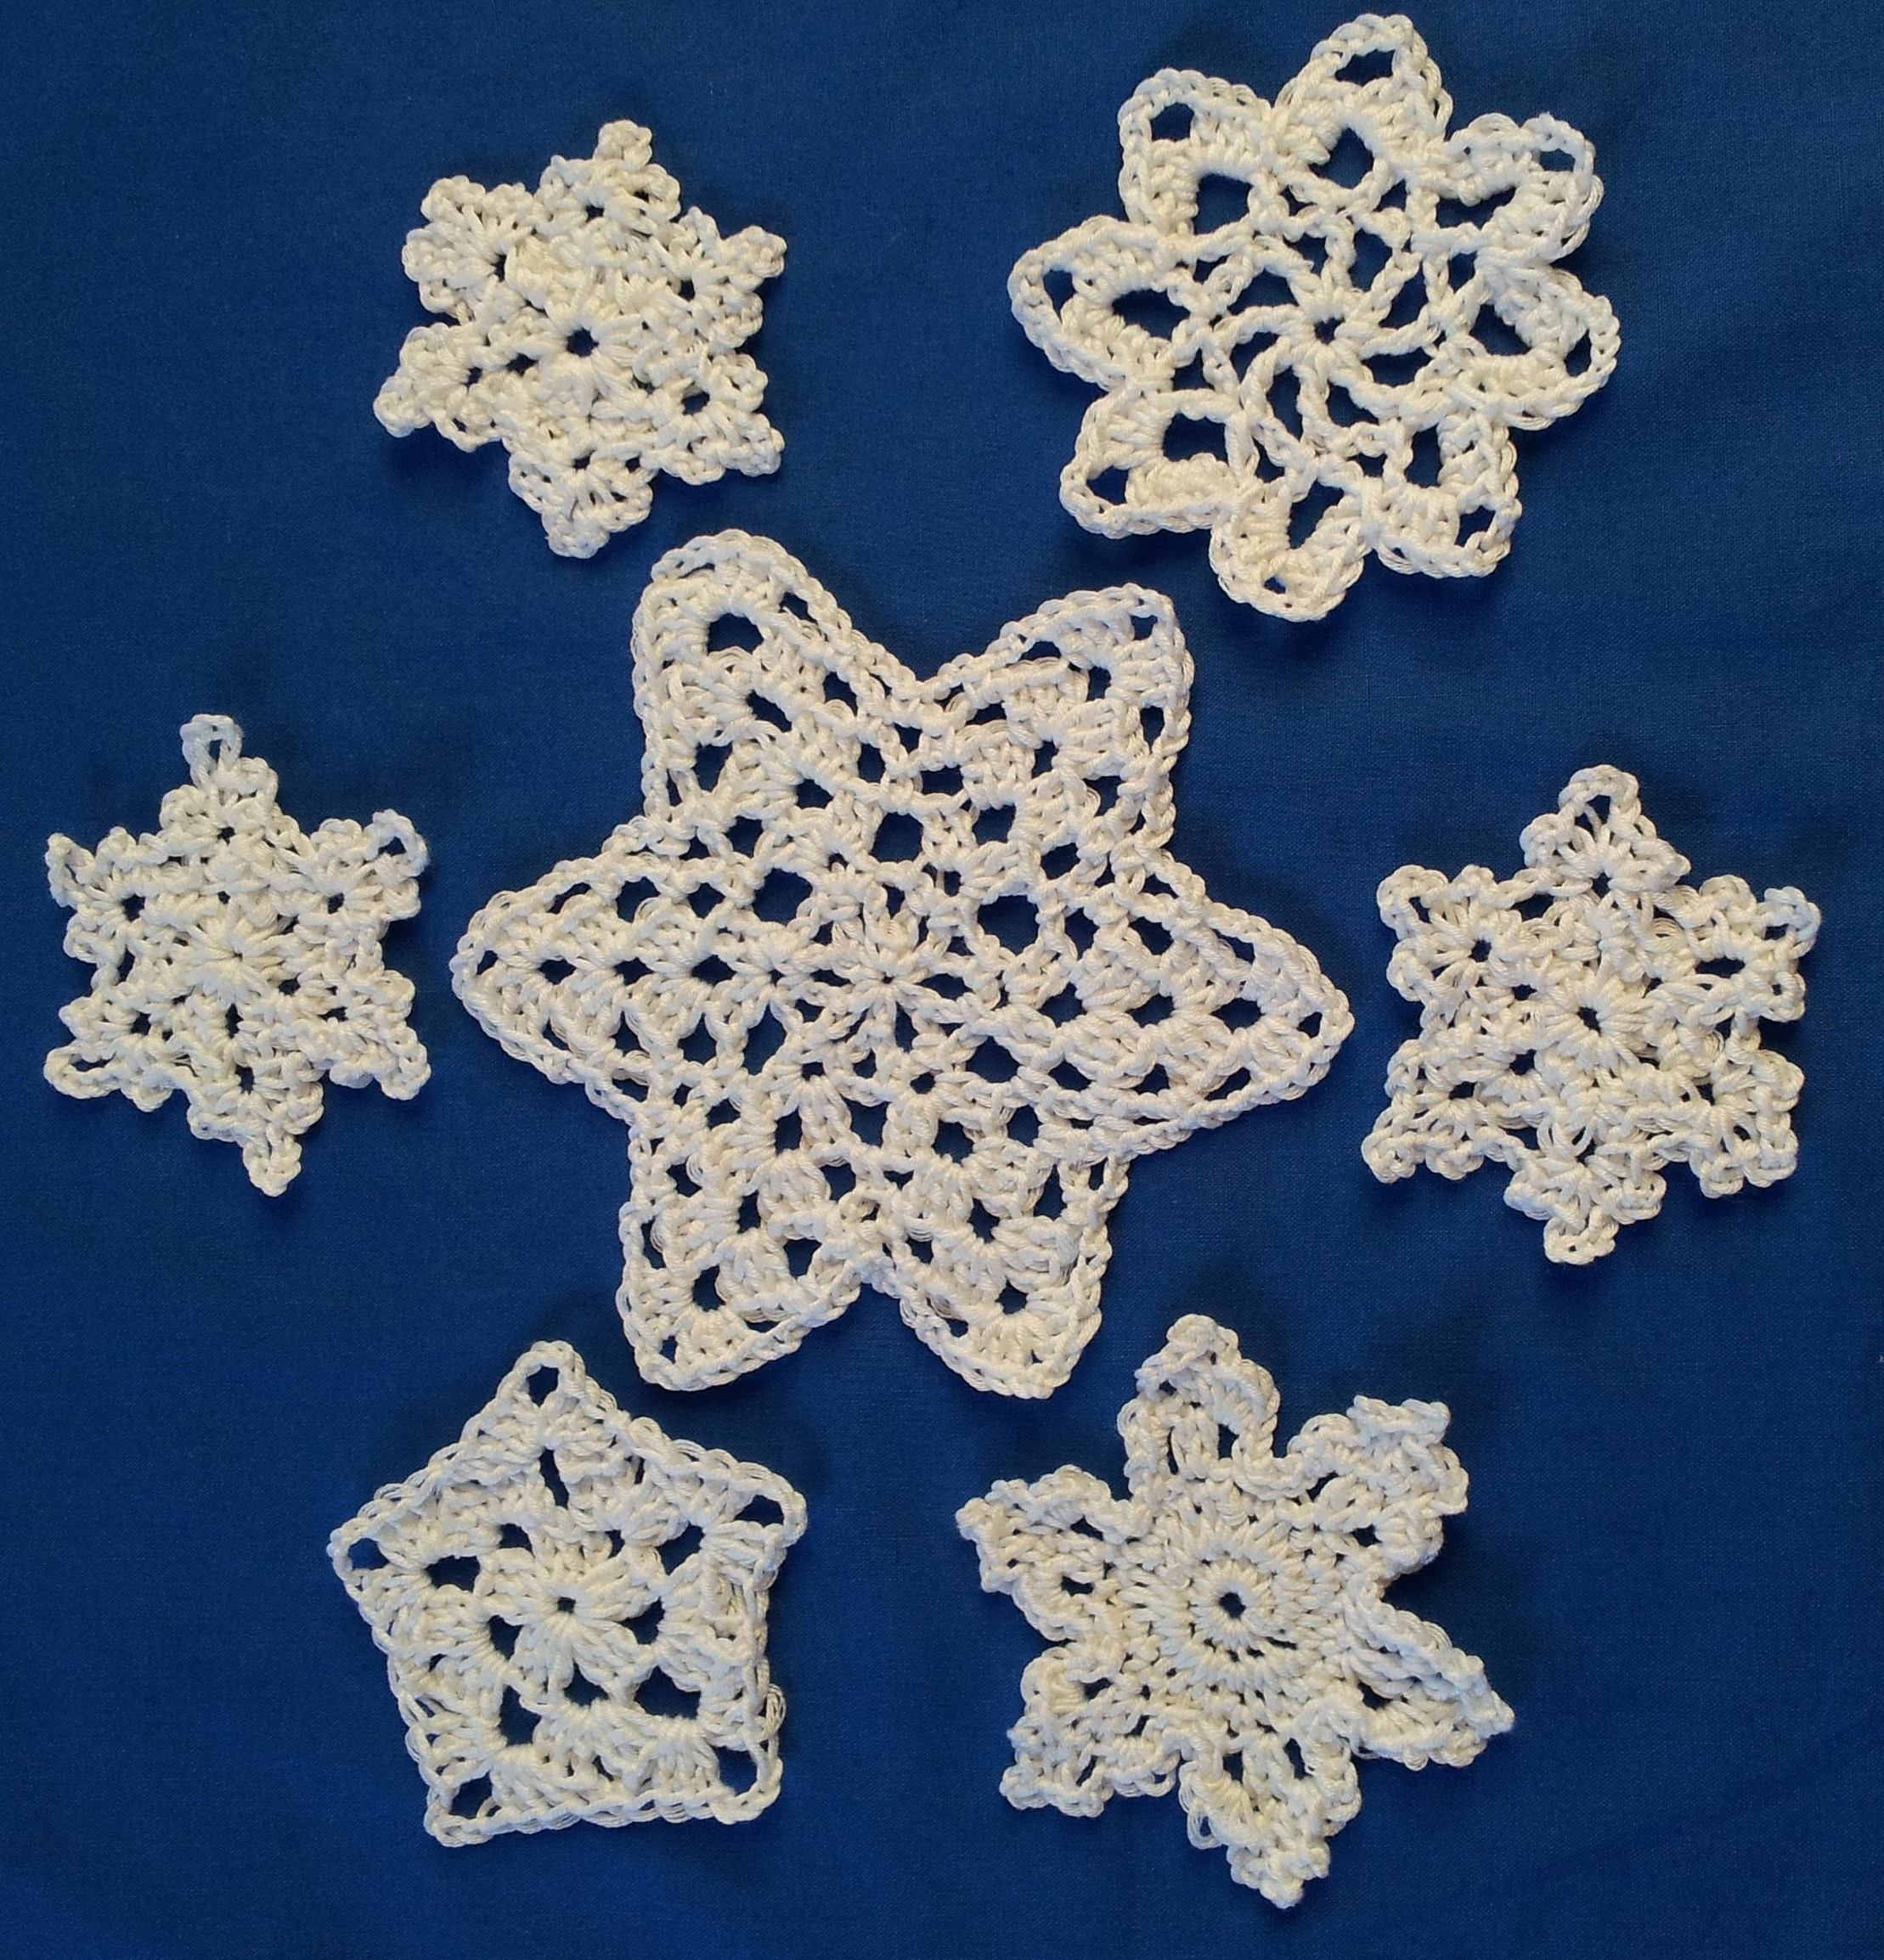 Crochet Snowflake Pattern Elegant Beginner Crochet Snowflake Patterns Dancox for Of Wonderful 50 Photos Crochet Snowflake Pattern